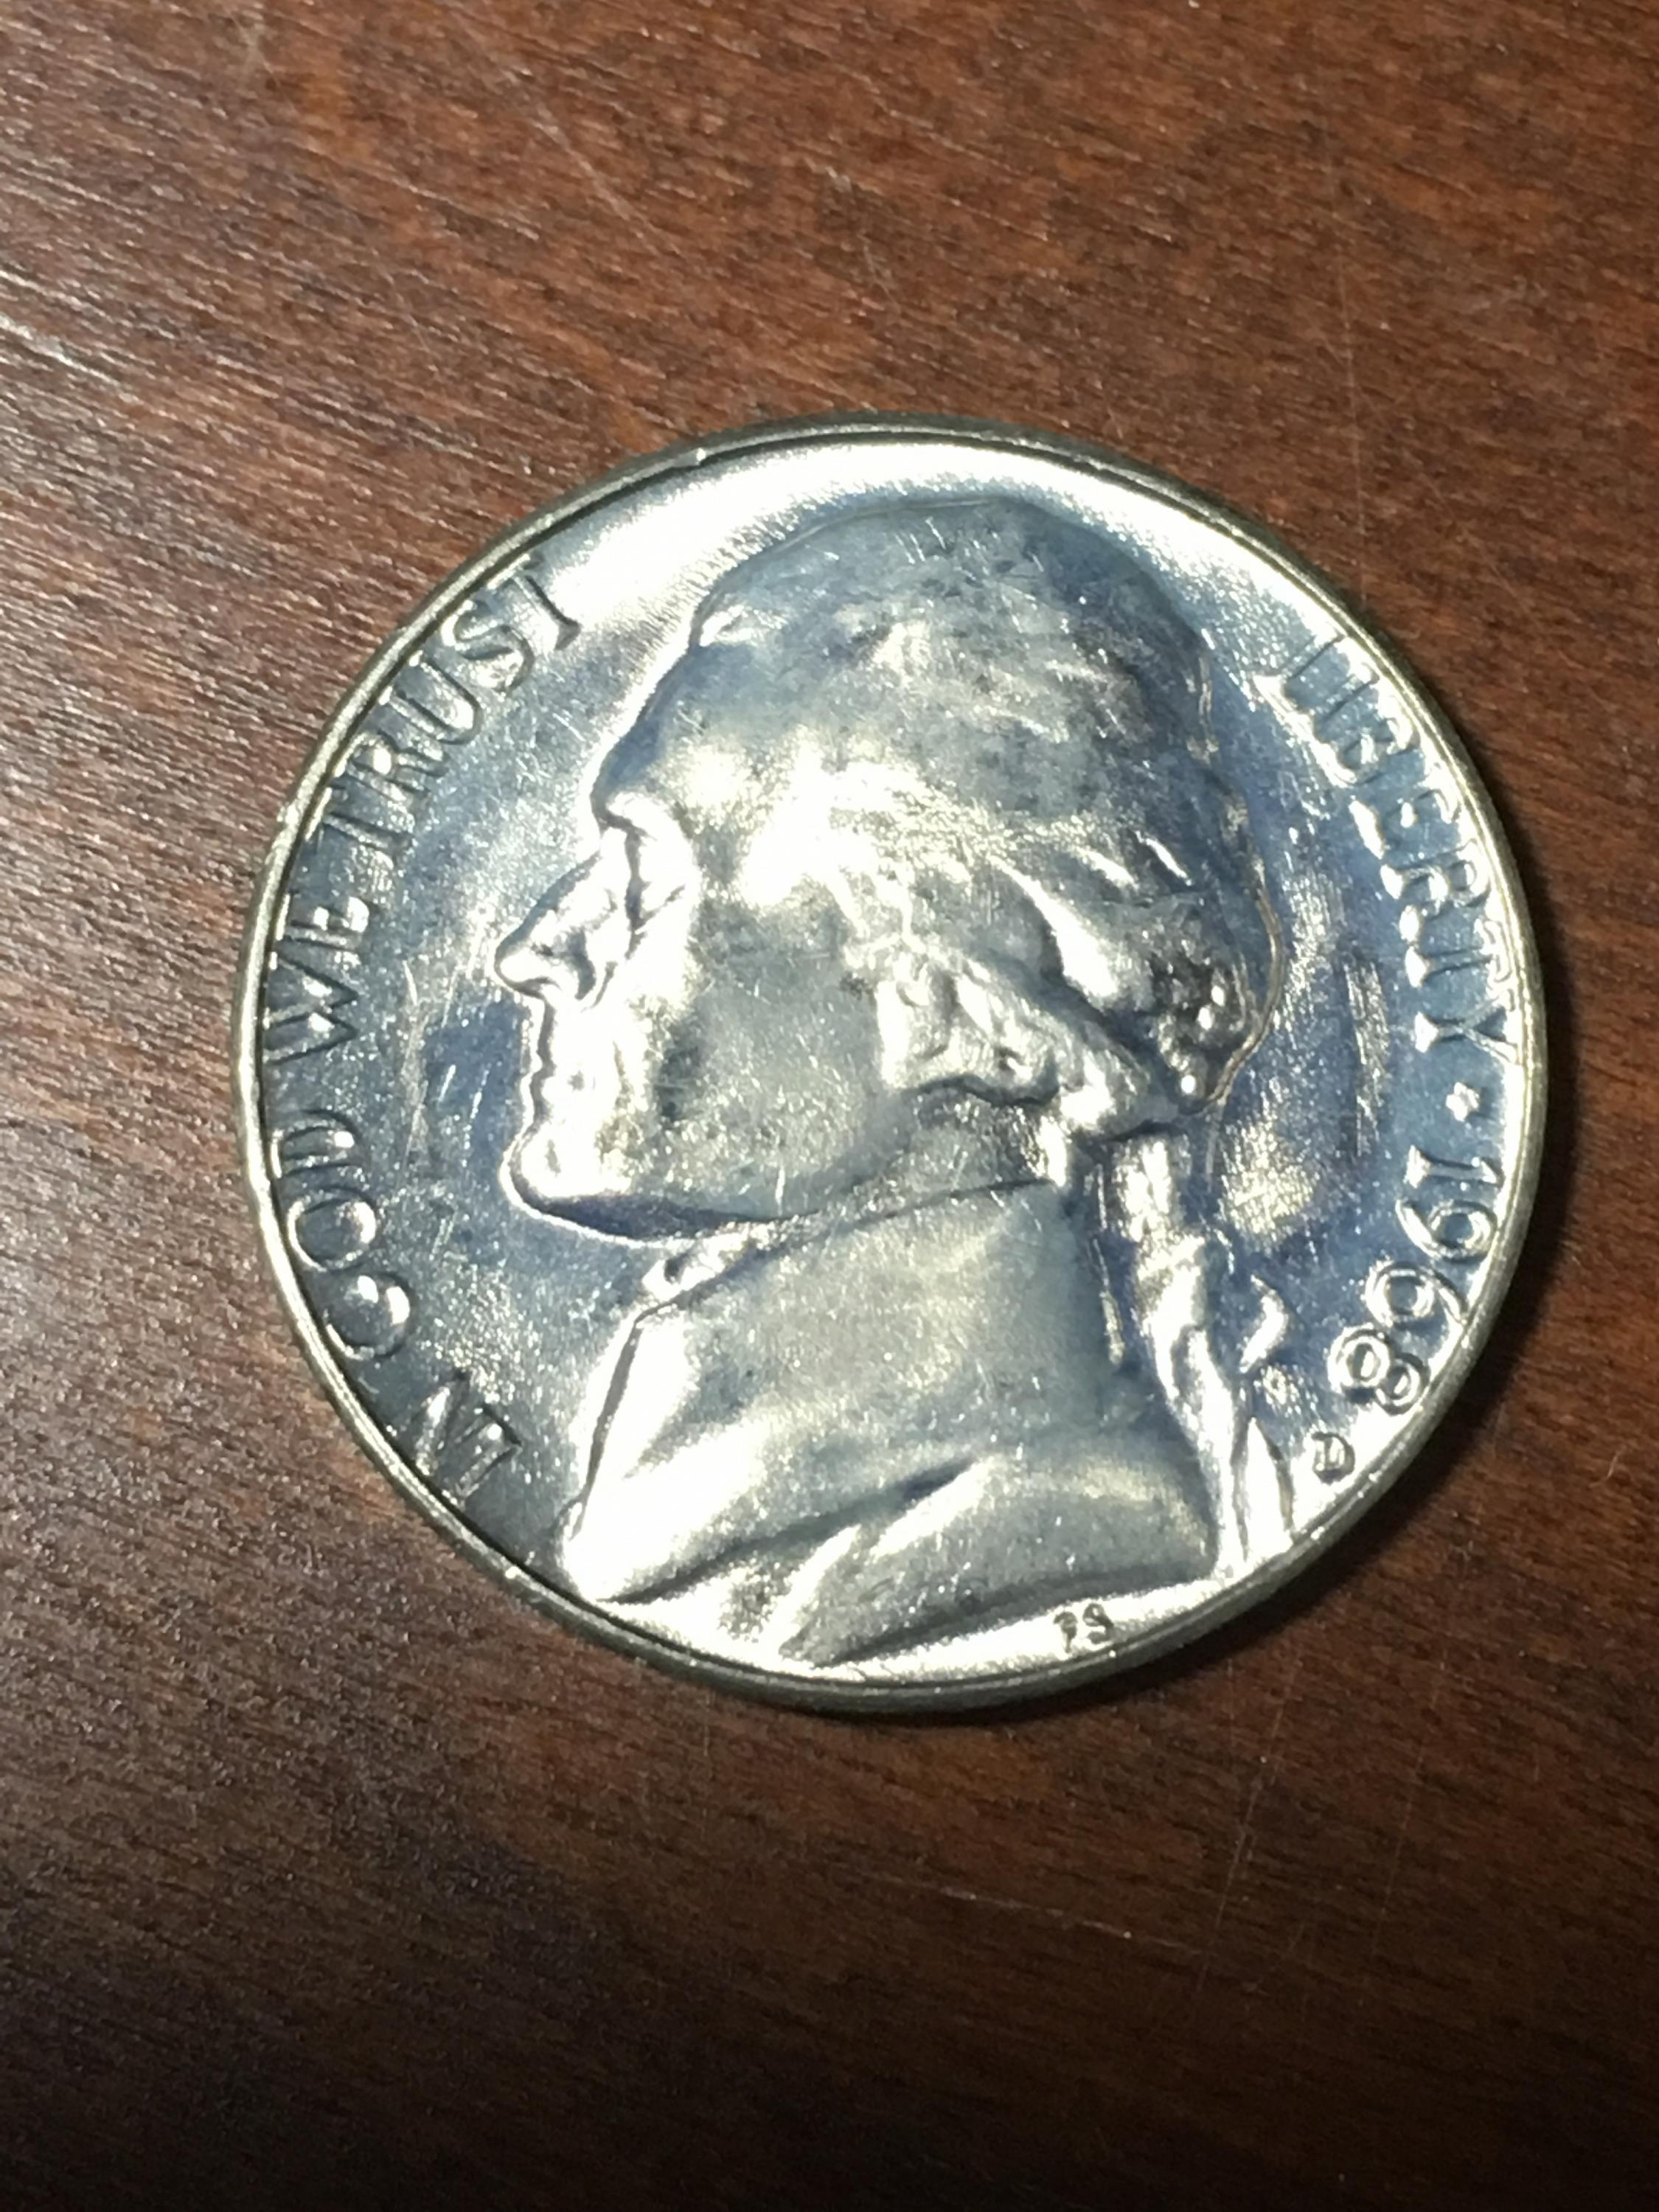 1973 P,D/&S Jefferson Nickels in BU and Proof condition